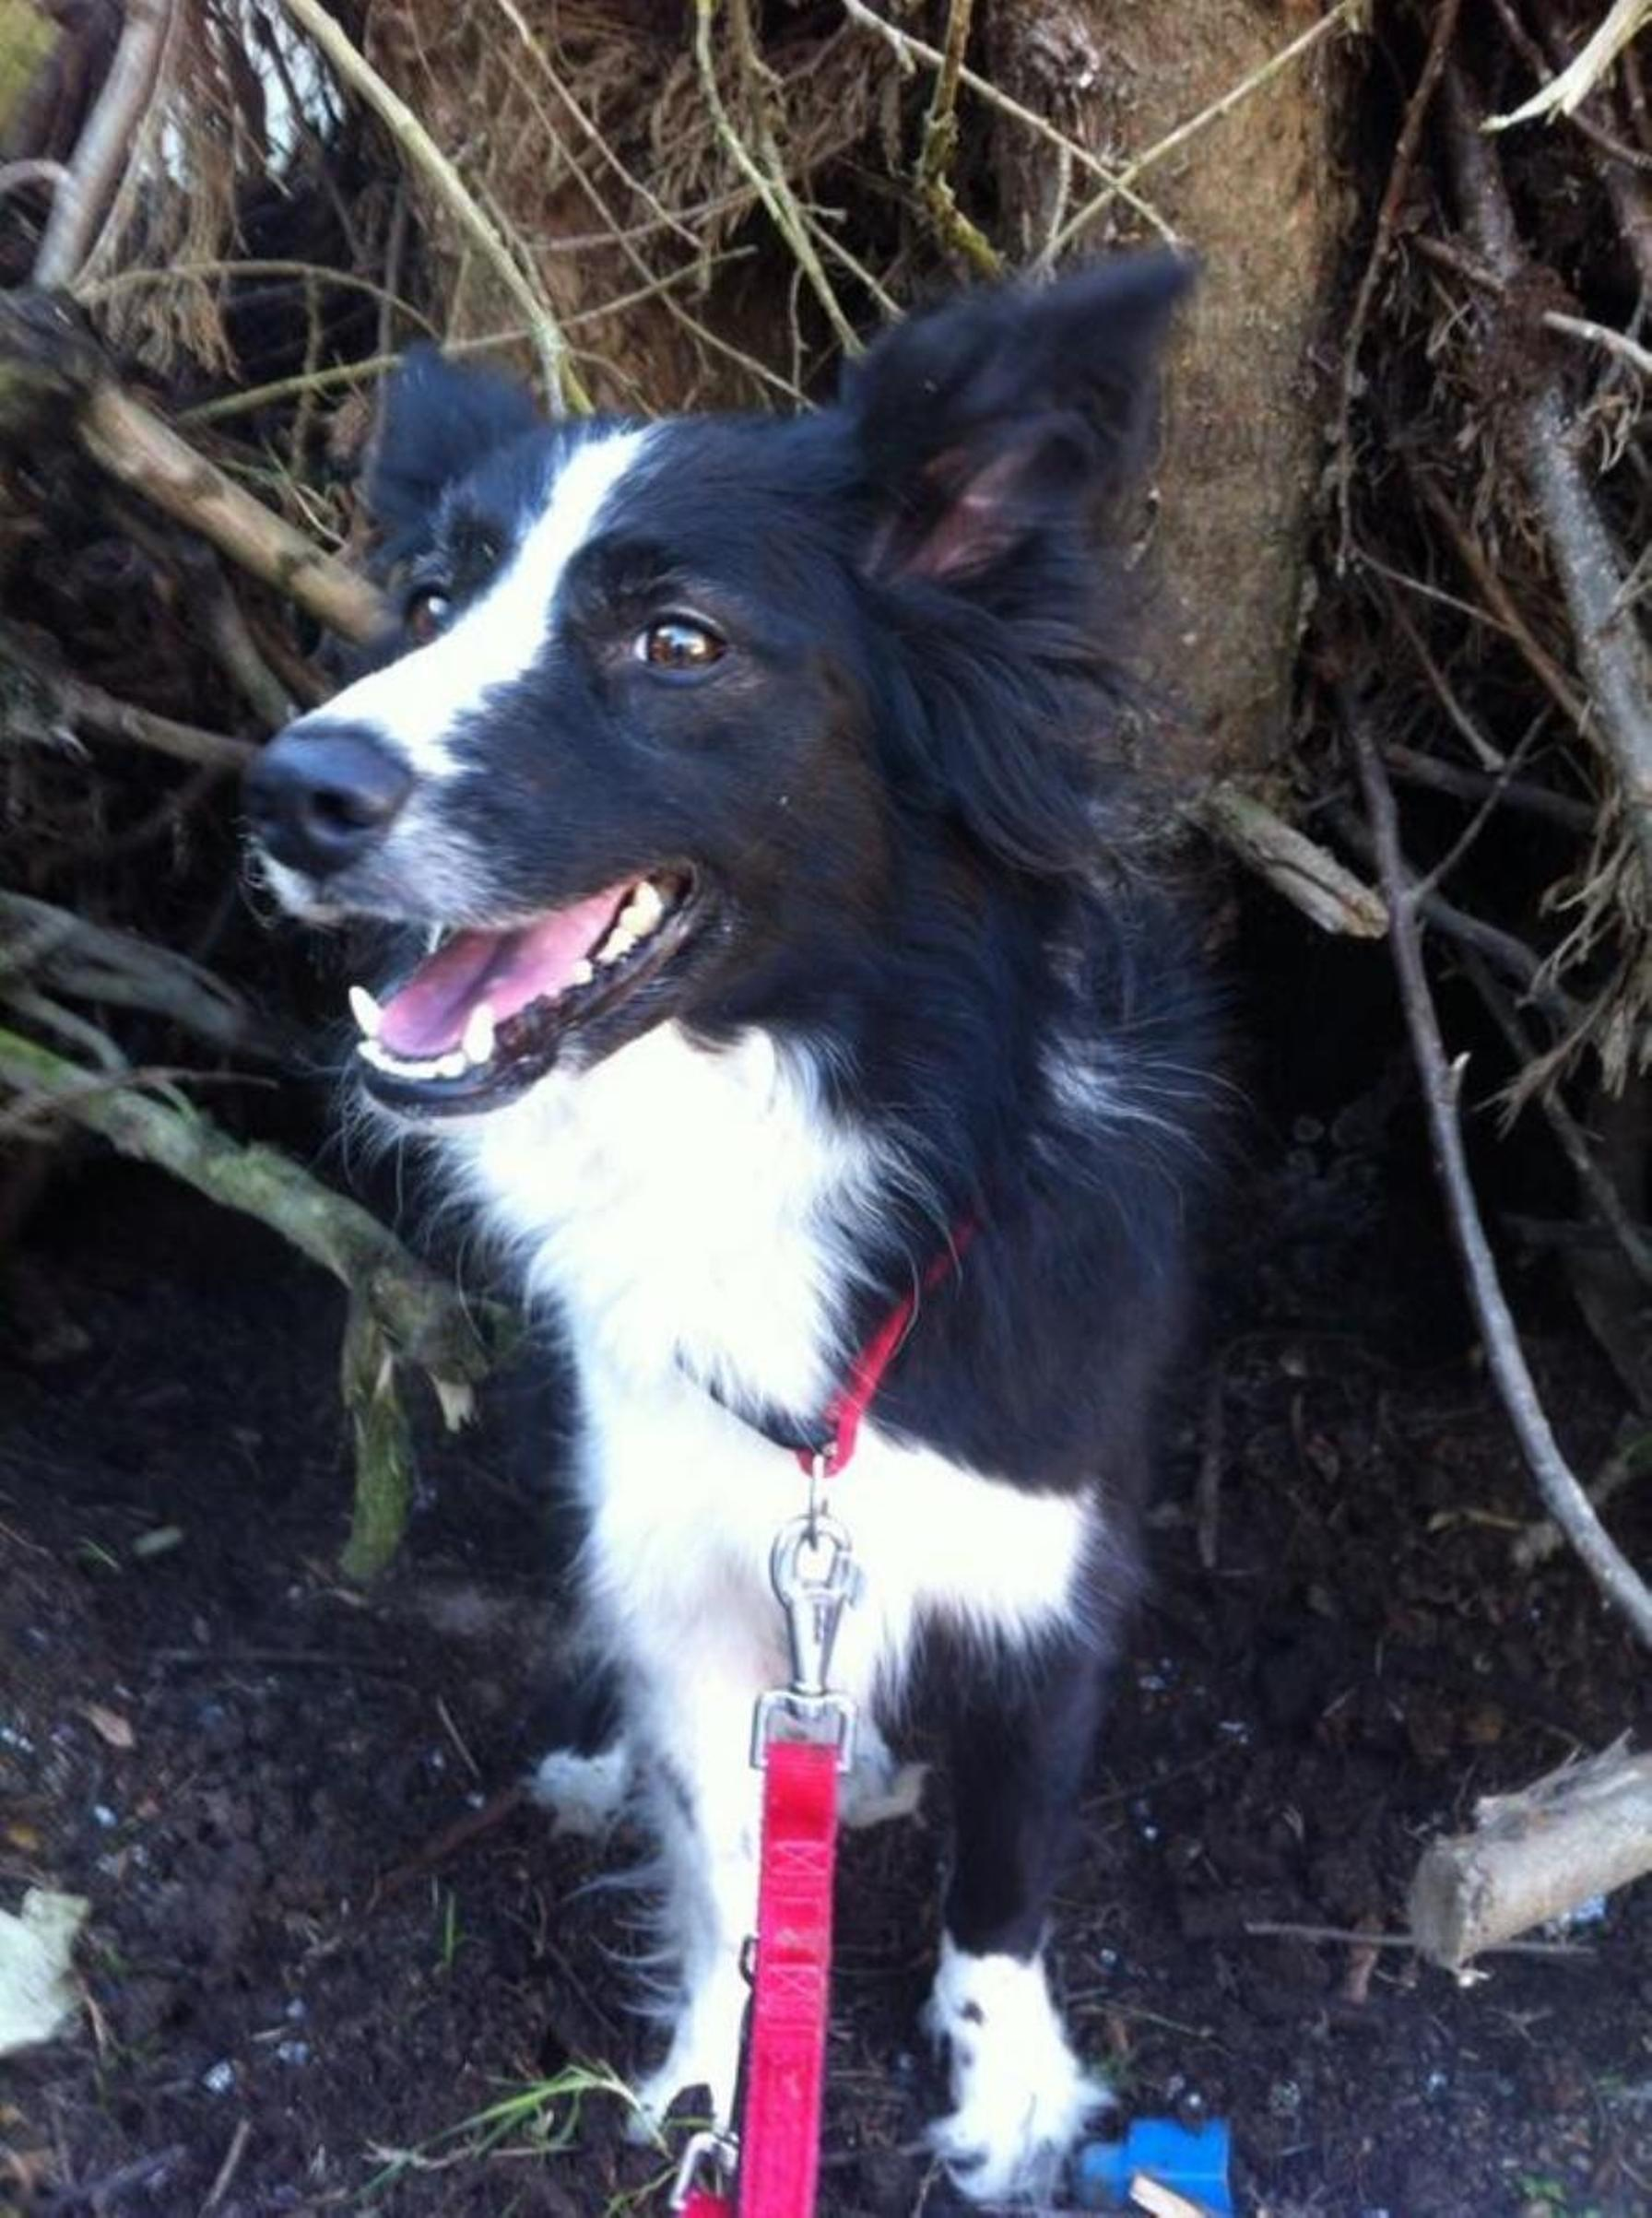 Pet dog rescued from rubble following blast